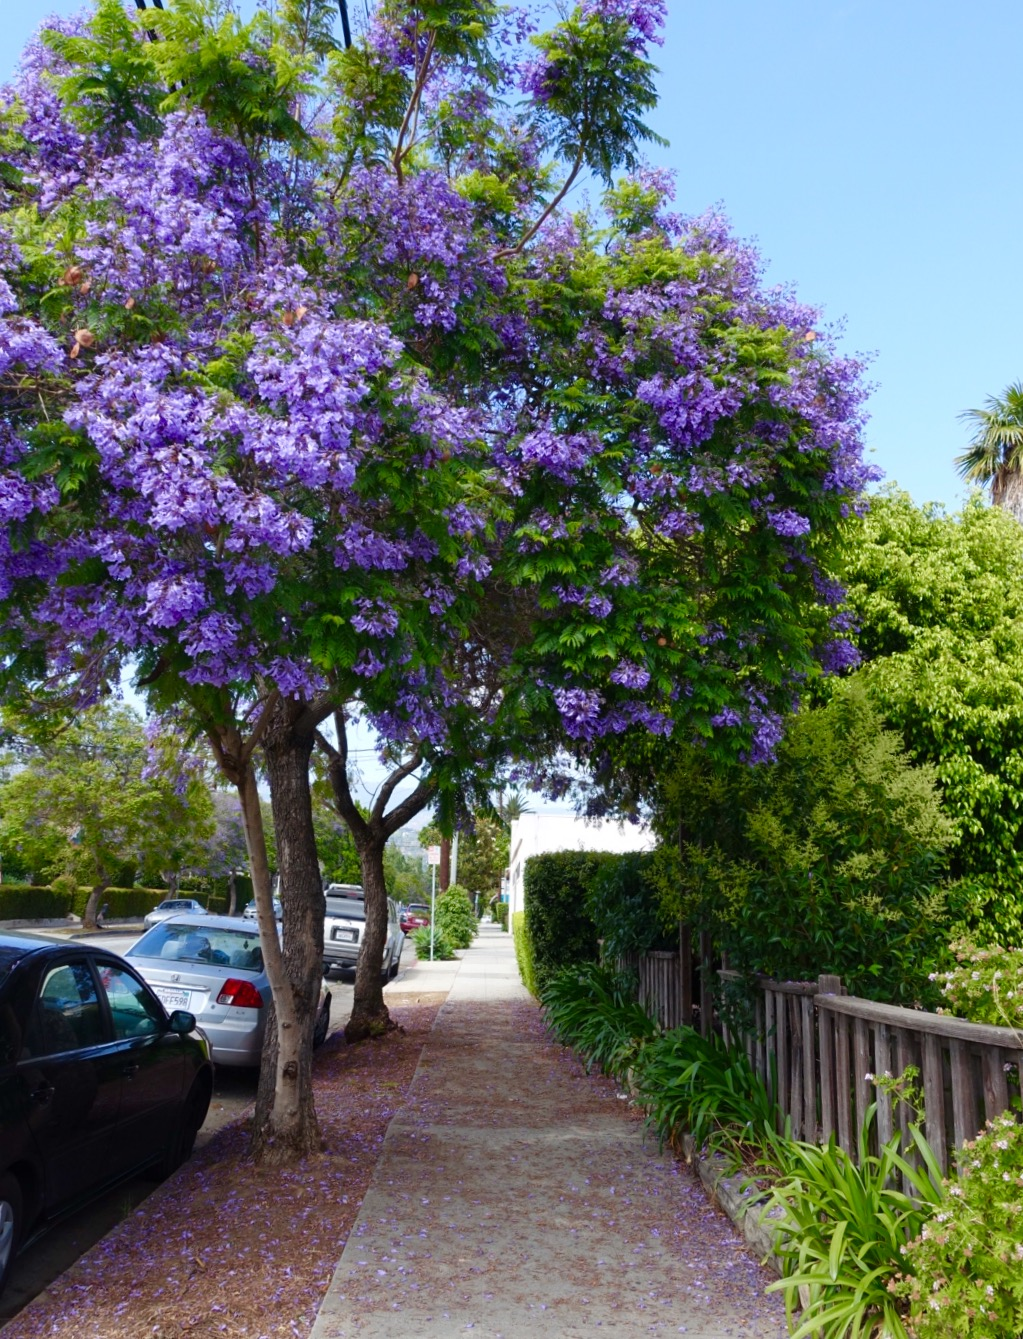 Springtime in Santa Barbara